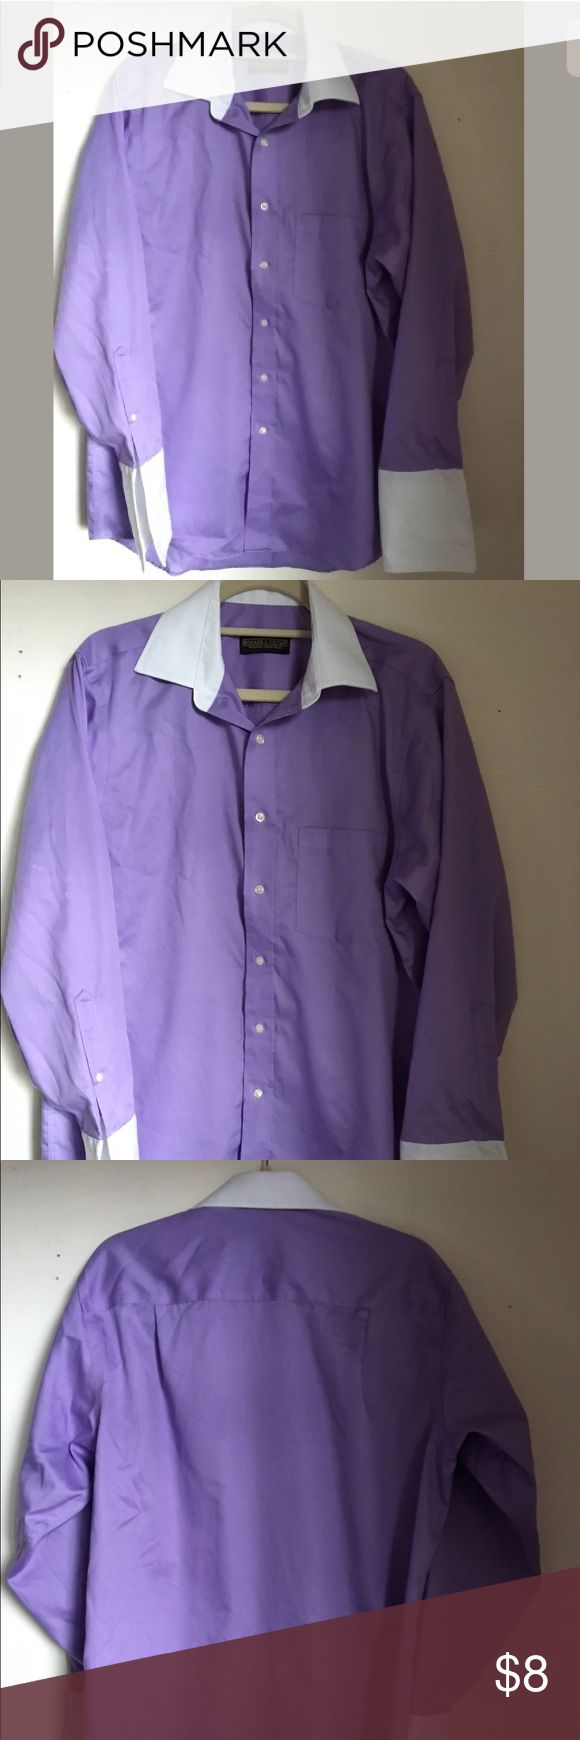 "Donald J. Trump Purple Dress Shirt Men 151/2 32/33 Donald J. Trump Signature Collection Purp Dress Shirt Mens 15 1/2 32/33 Non Iron Descriptions: Brand- Donald J. Trump Tag Size- 15 1/2 or 32-33 Color- Purple and White Made in Bangladesh No Iron Shirt, Regular Fit Pet Free Smoke Free Stain spots on right sleeve, can be use with jacket to cover stain spotsSee last Picture. Measurements: Shoulder To Shoulder- 19"" Sleeve- 28"" Chest- (Lying Flat)- 24"" Length- 29""  Thank You for Shopping at…"